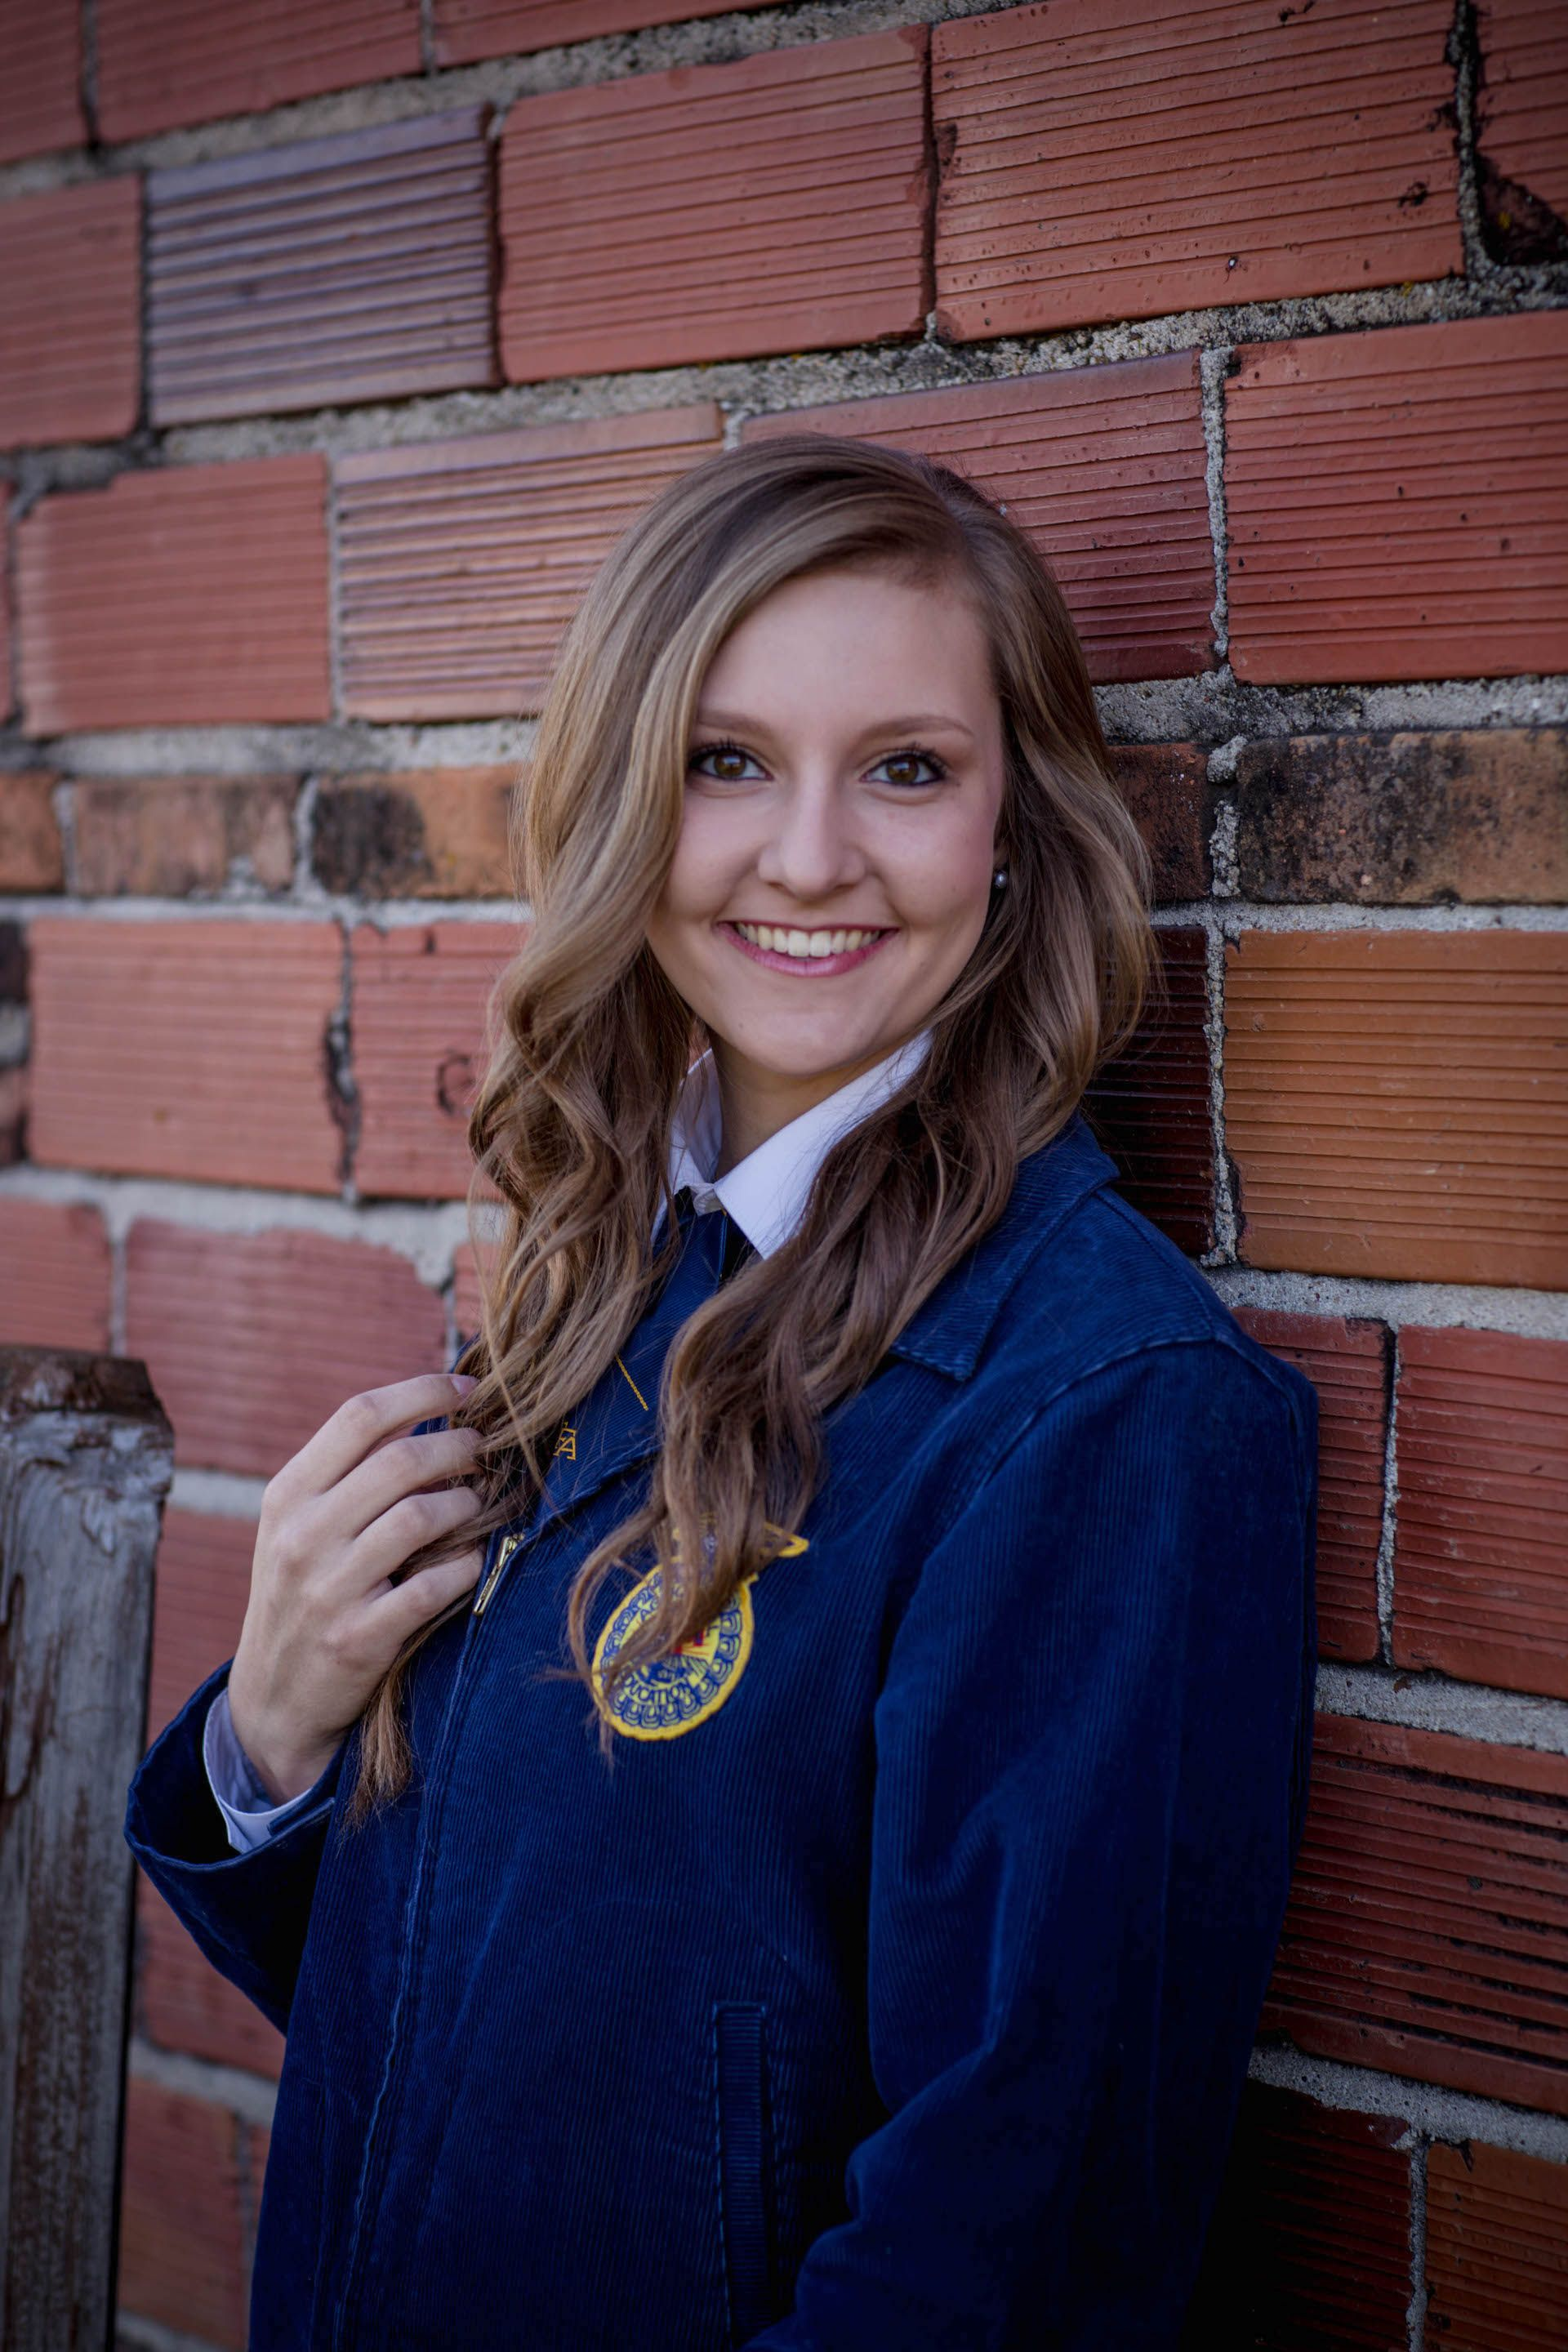 Meet Your 2017-18 State Officer: Kelli Mashino